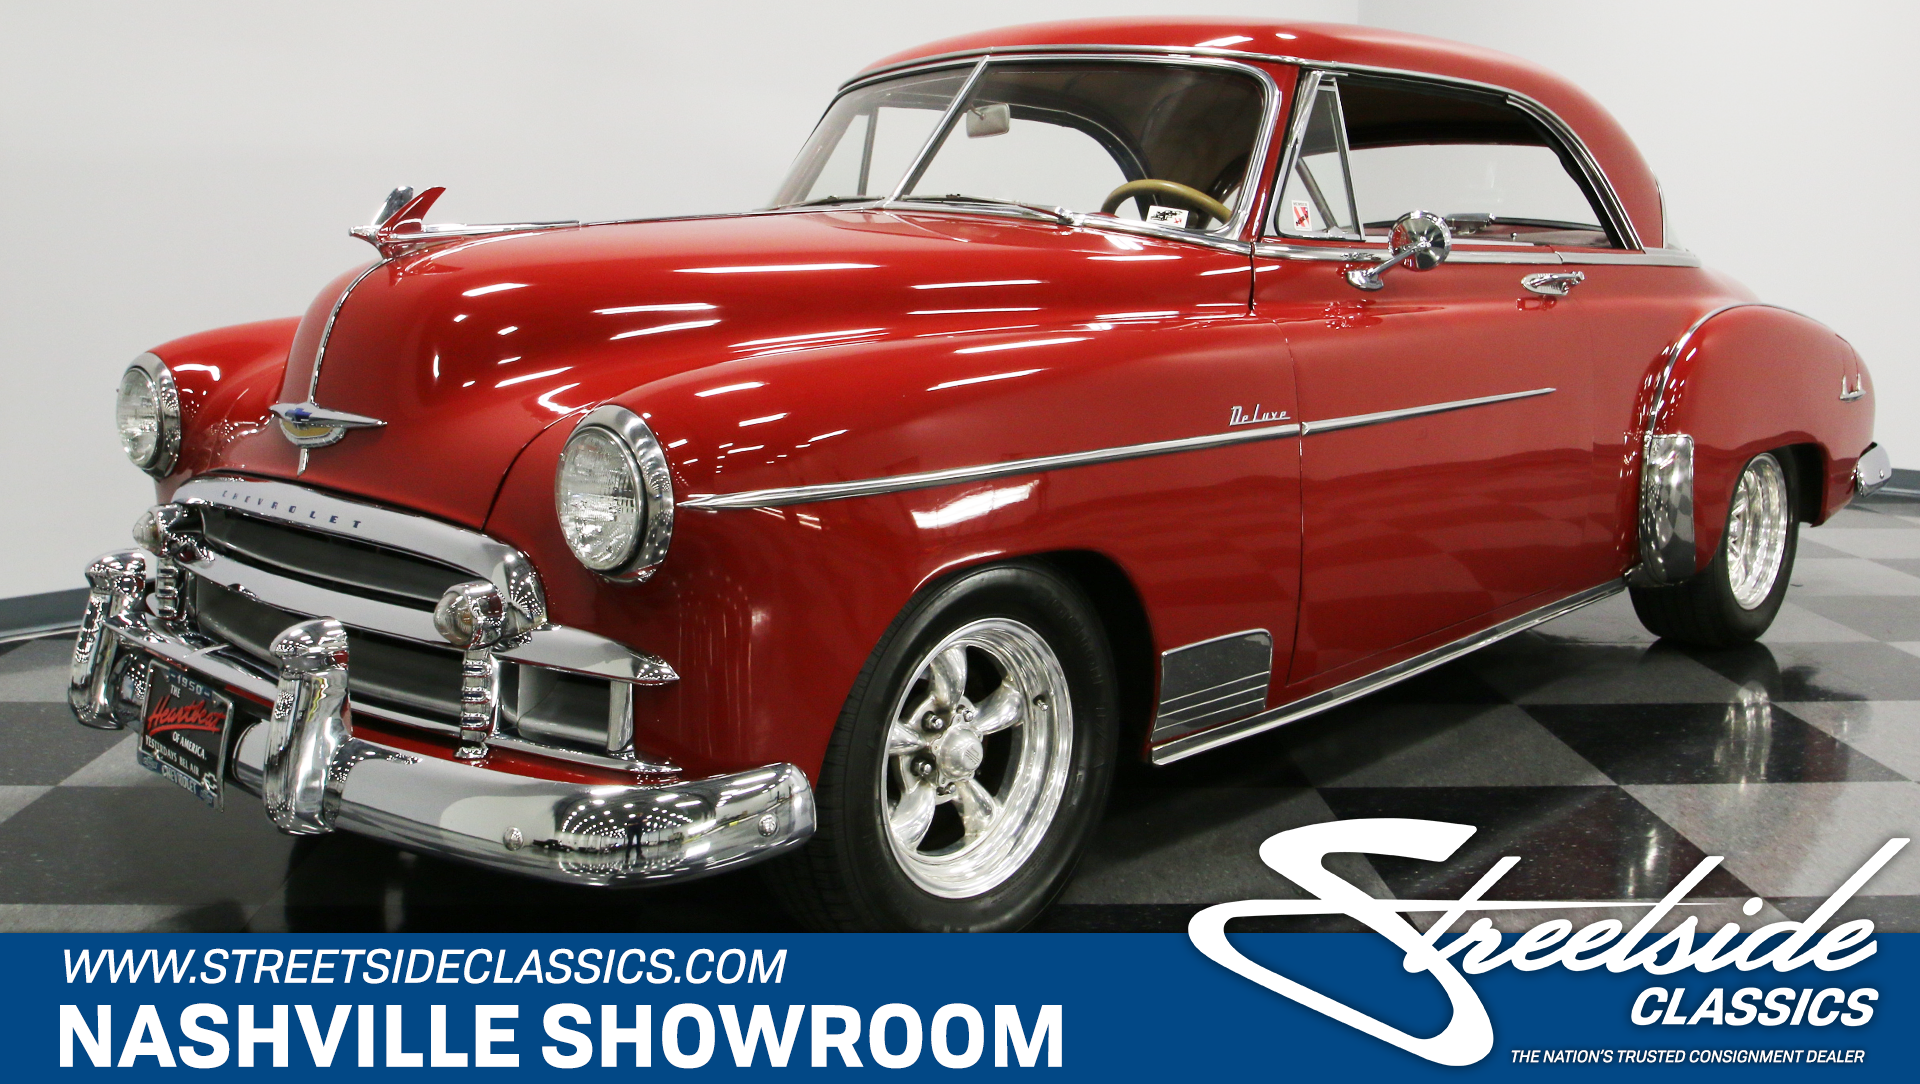 1950 Chevrolet Bel Air Streetside Classics The Nations Trusted 1966 Chevy For Sale Show More Photos